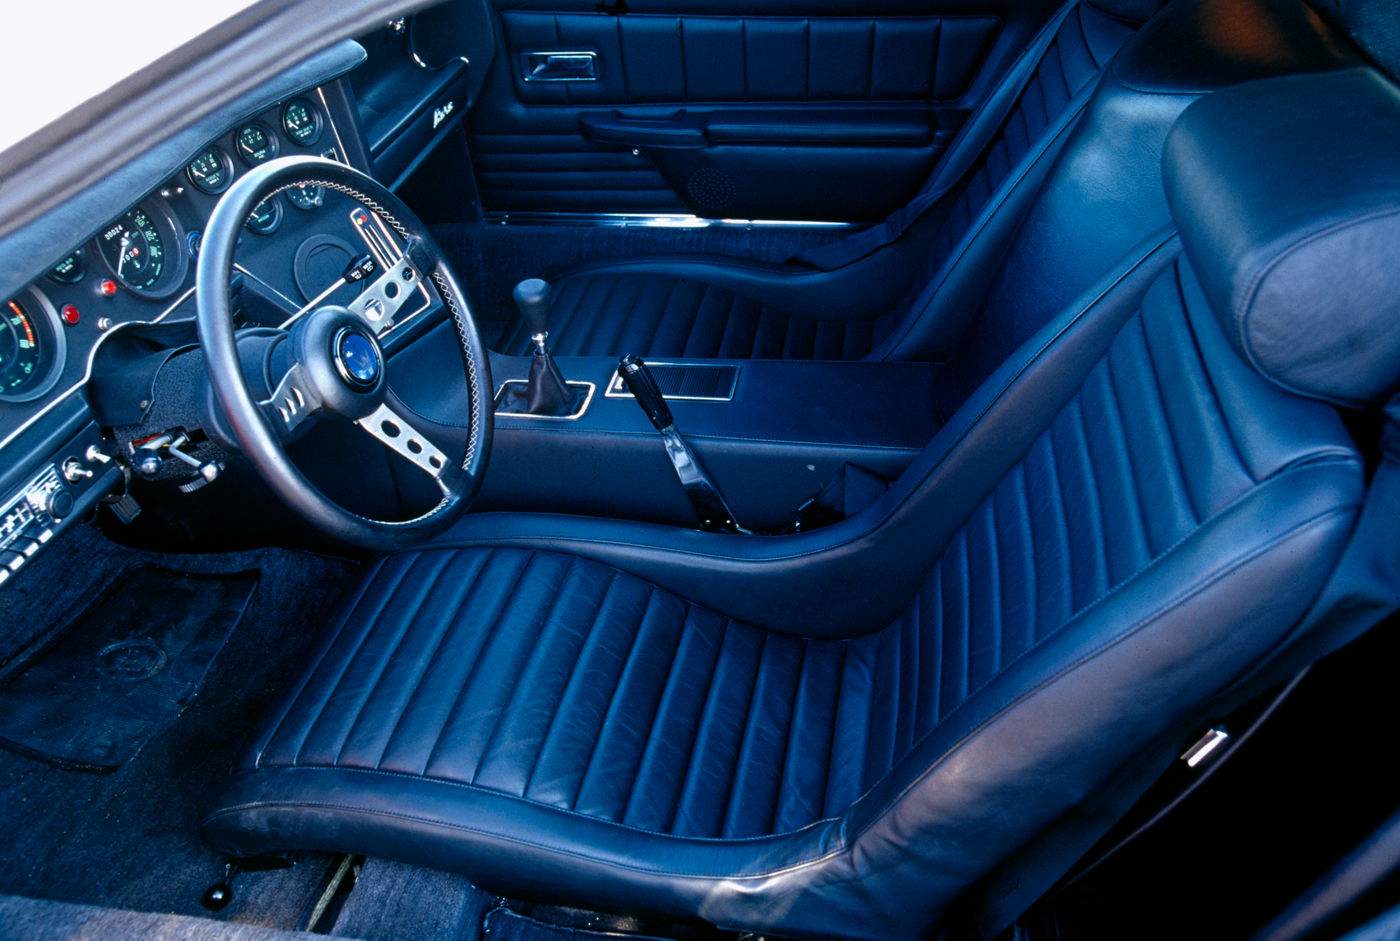 1971 Maserati Bora - classic sports car model, interior view